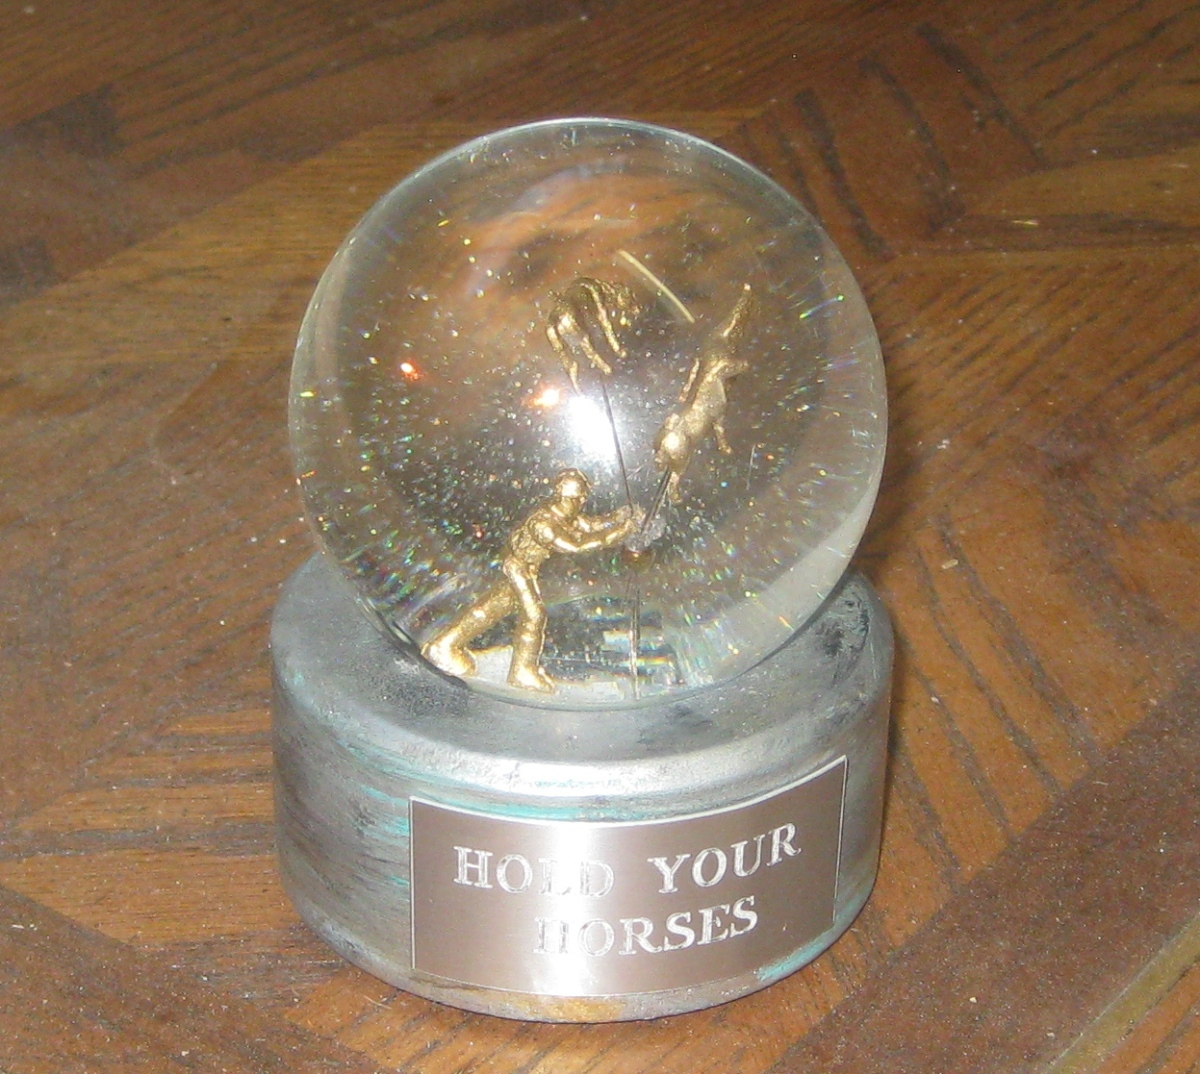 Hold Your Horses custom snow globe, Camryn Forrest Designs, Denver, CO USA 2016